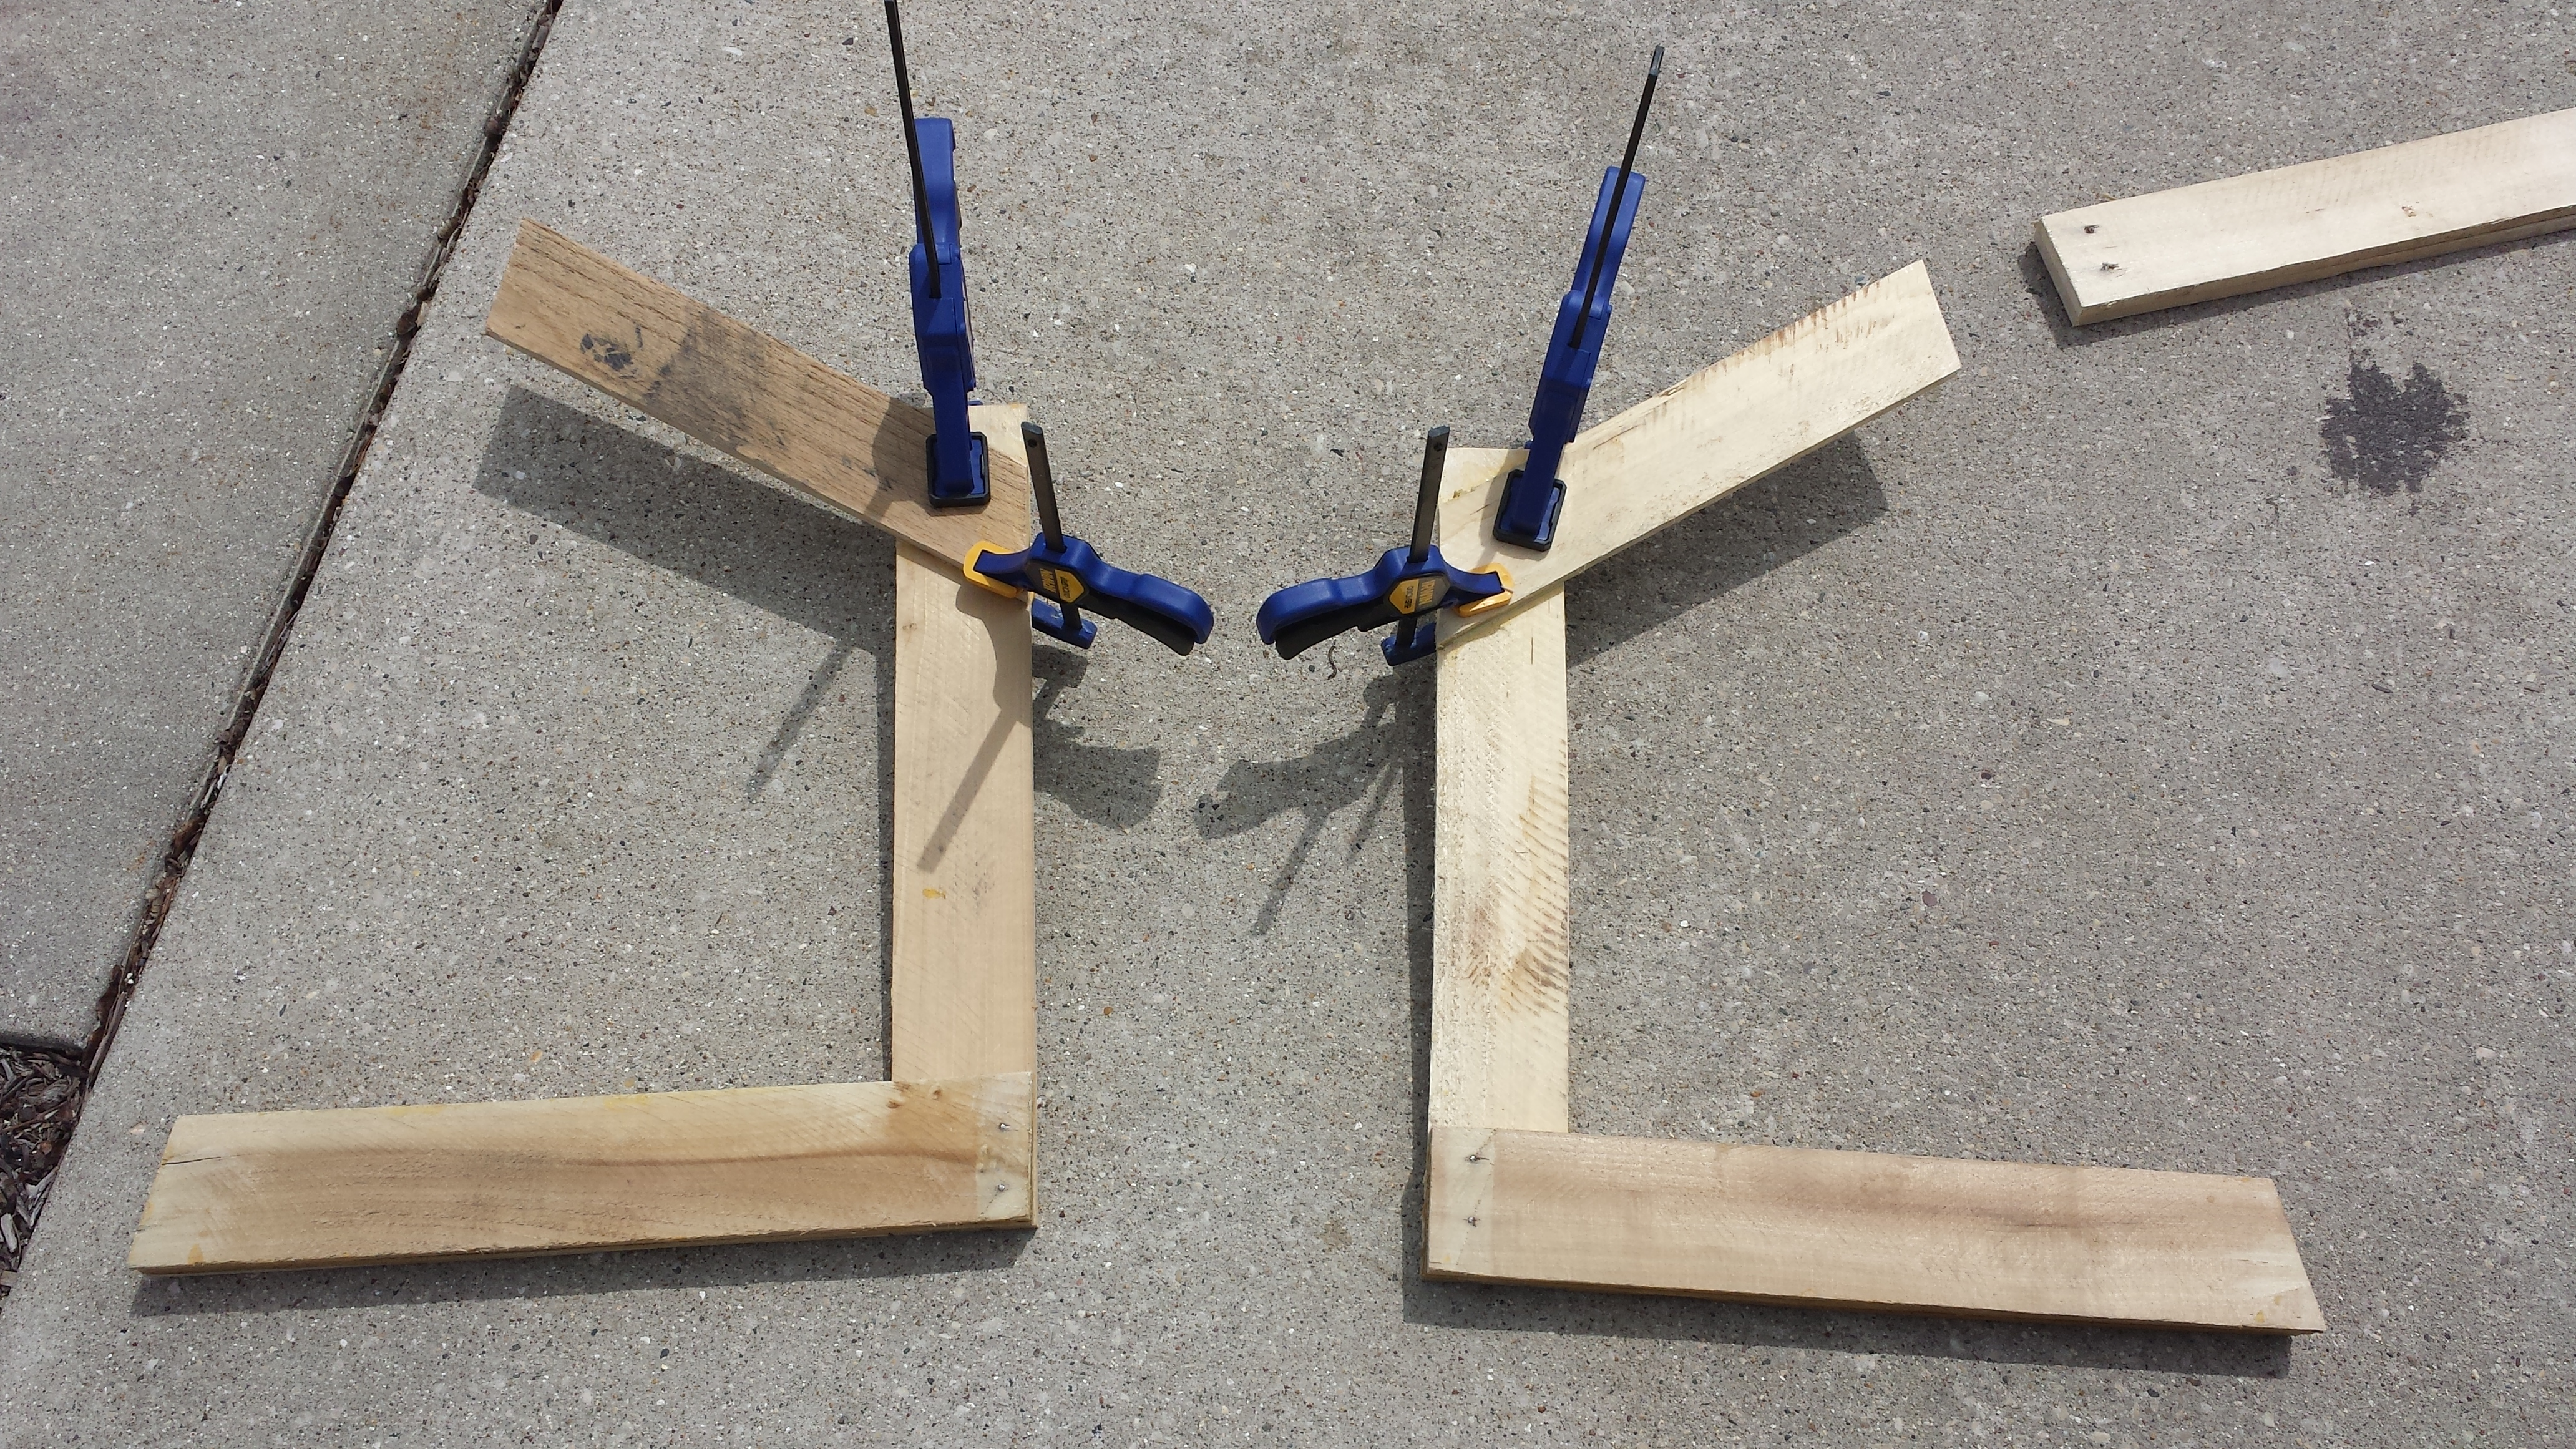 Picture of Gluing the Side Pieces Together